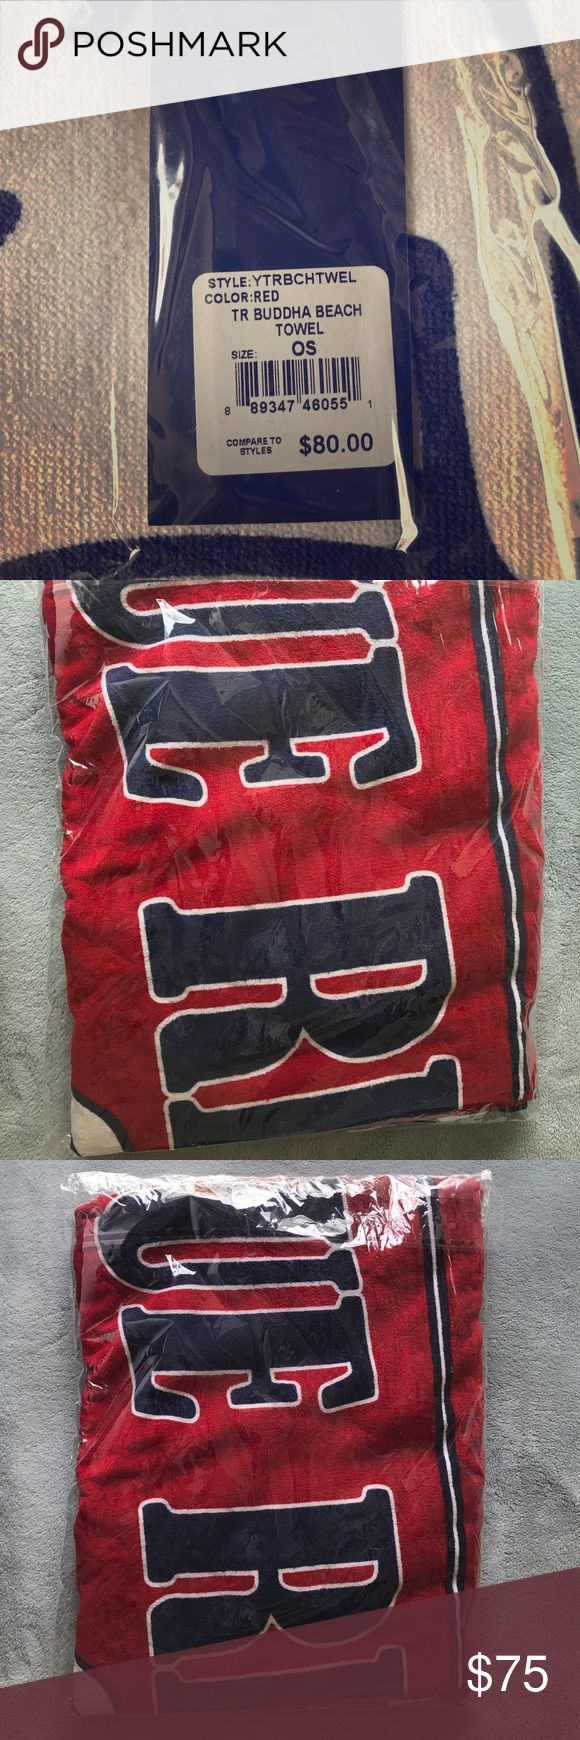 True Religion large beach towel True Religion red large beach towel brand new with tags - unopened True Religion Other